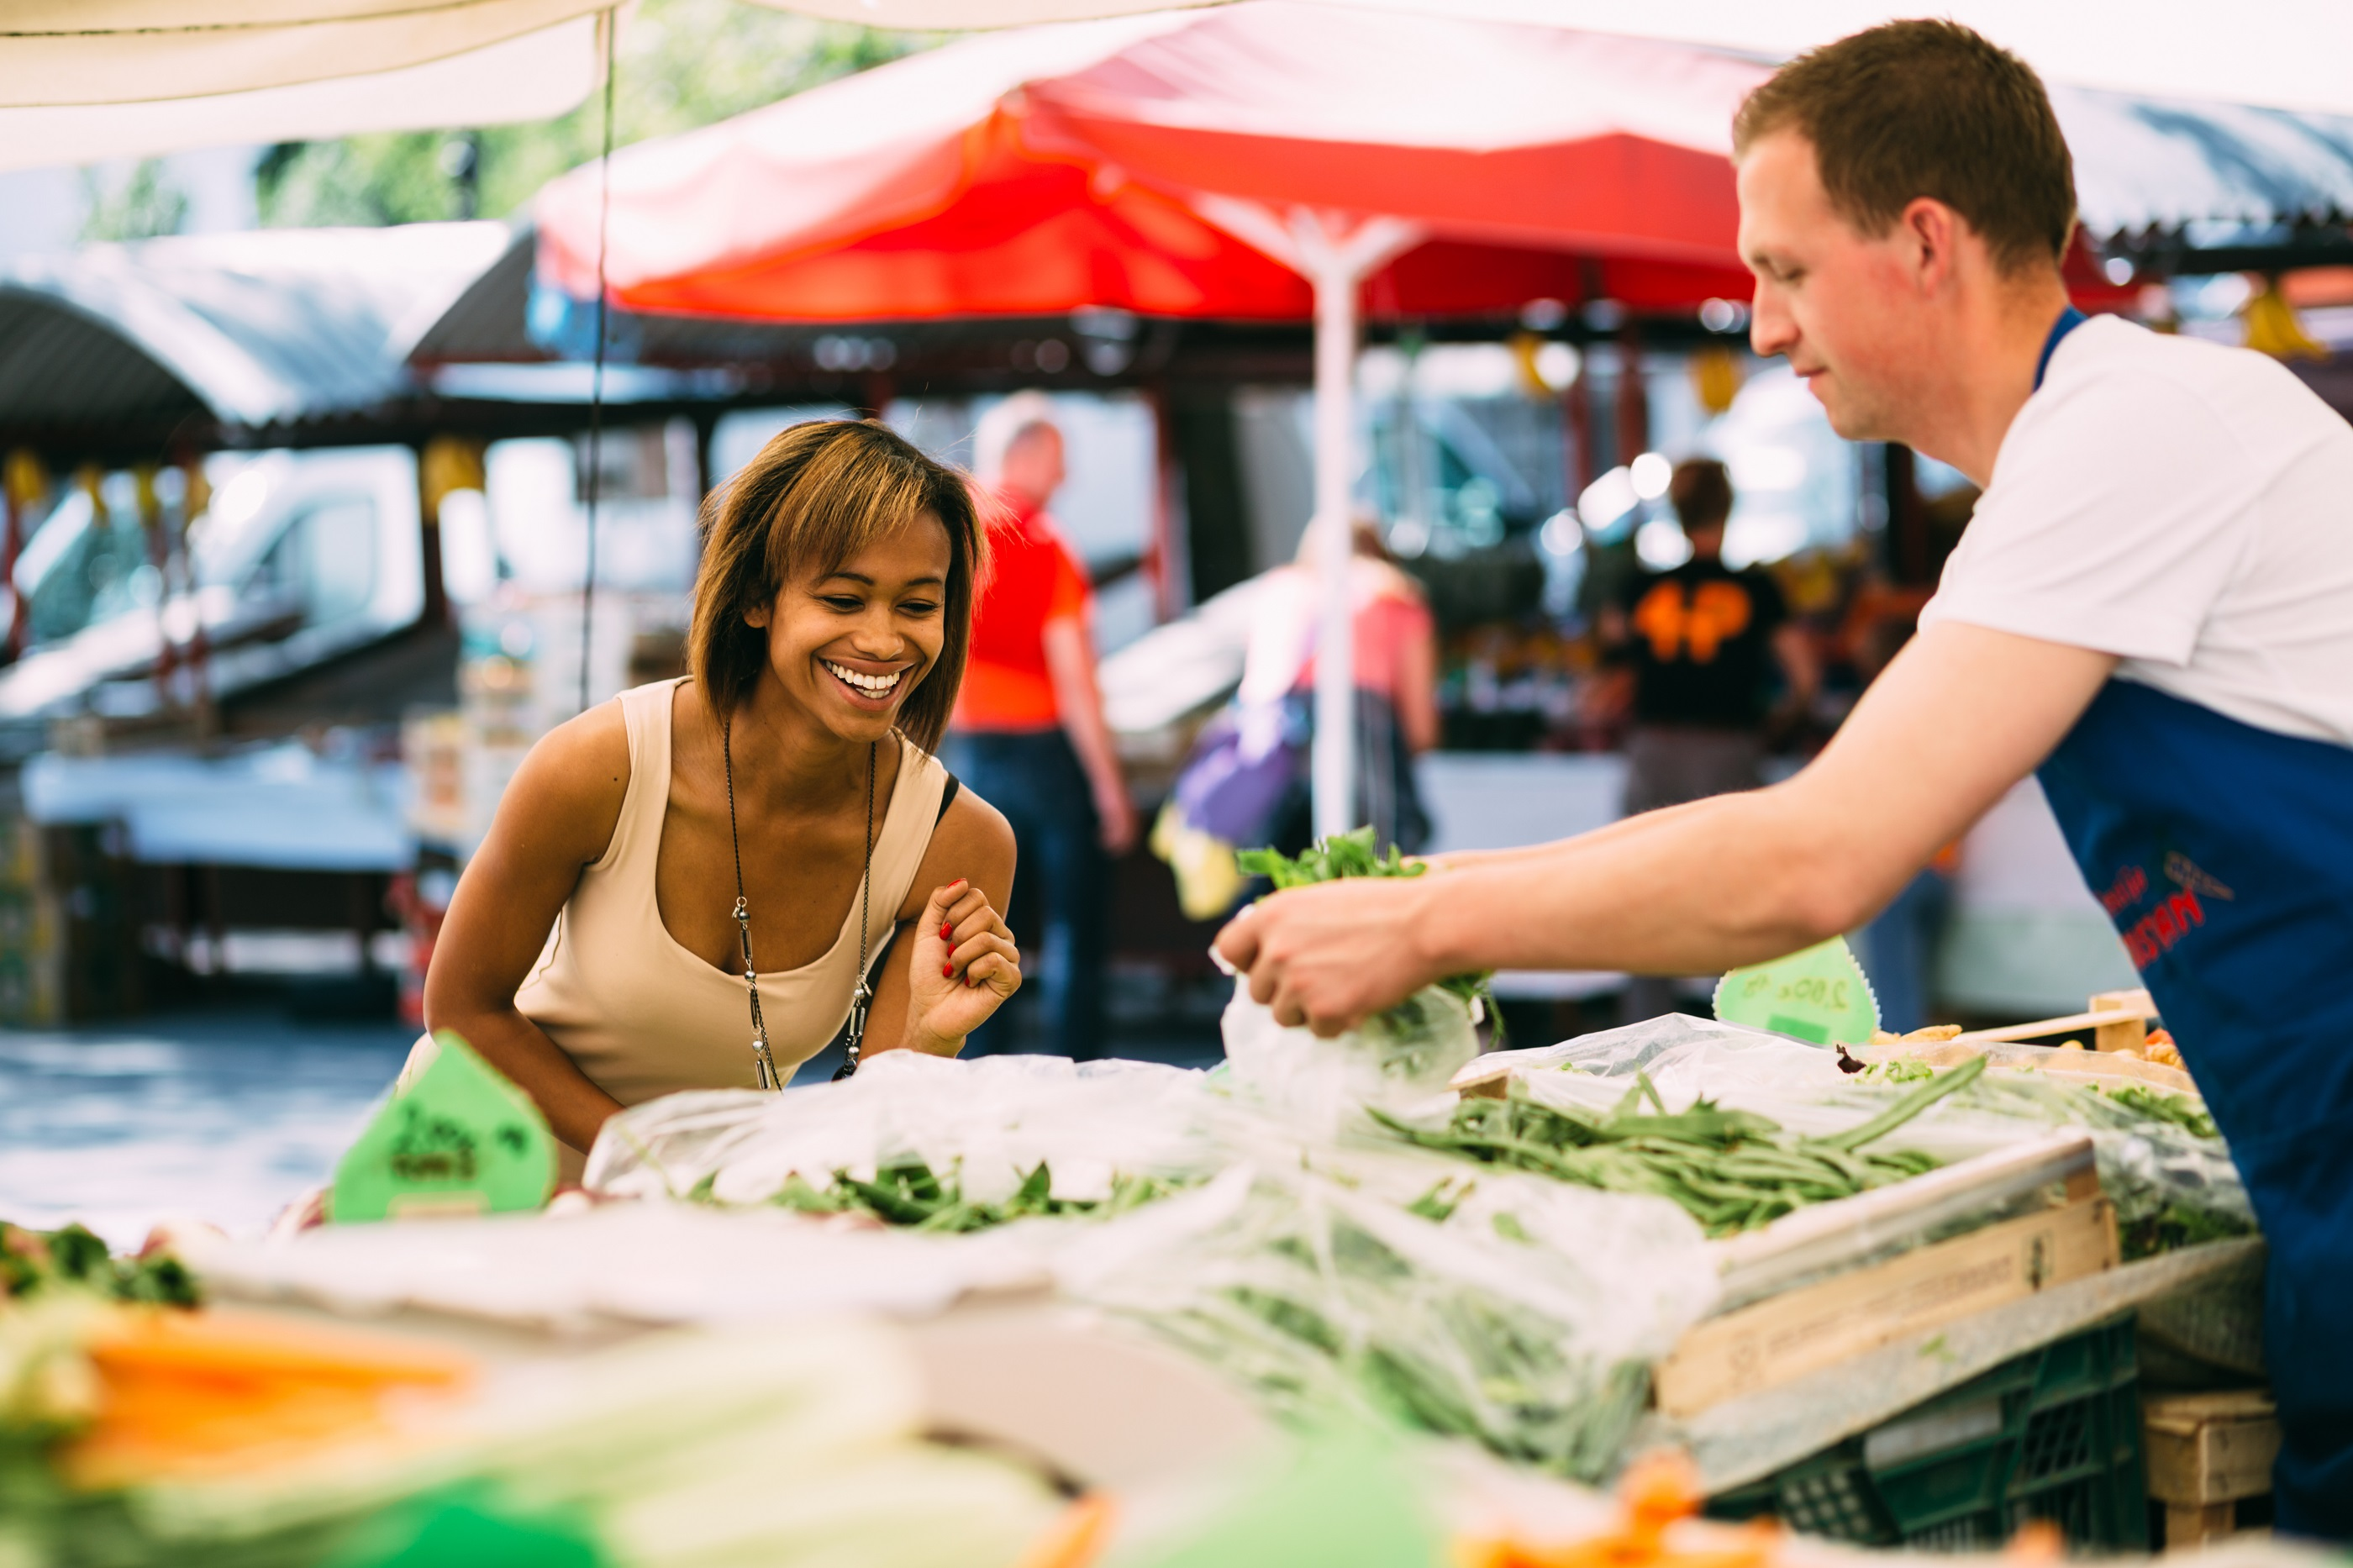 It's Time to Get Out and Enjoy the Sustainability Super Food: Farmers Market Week Happens August 5-11